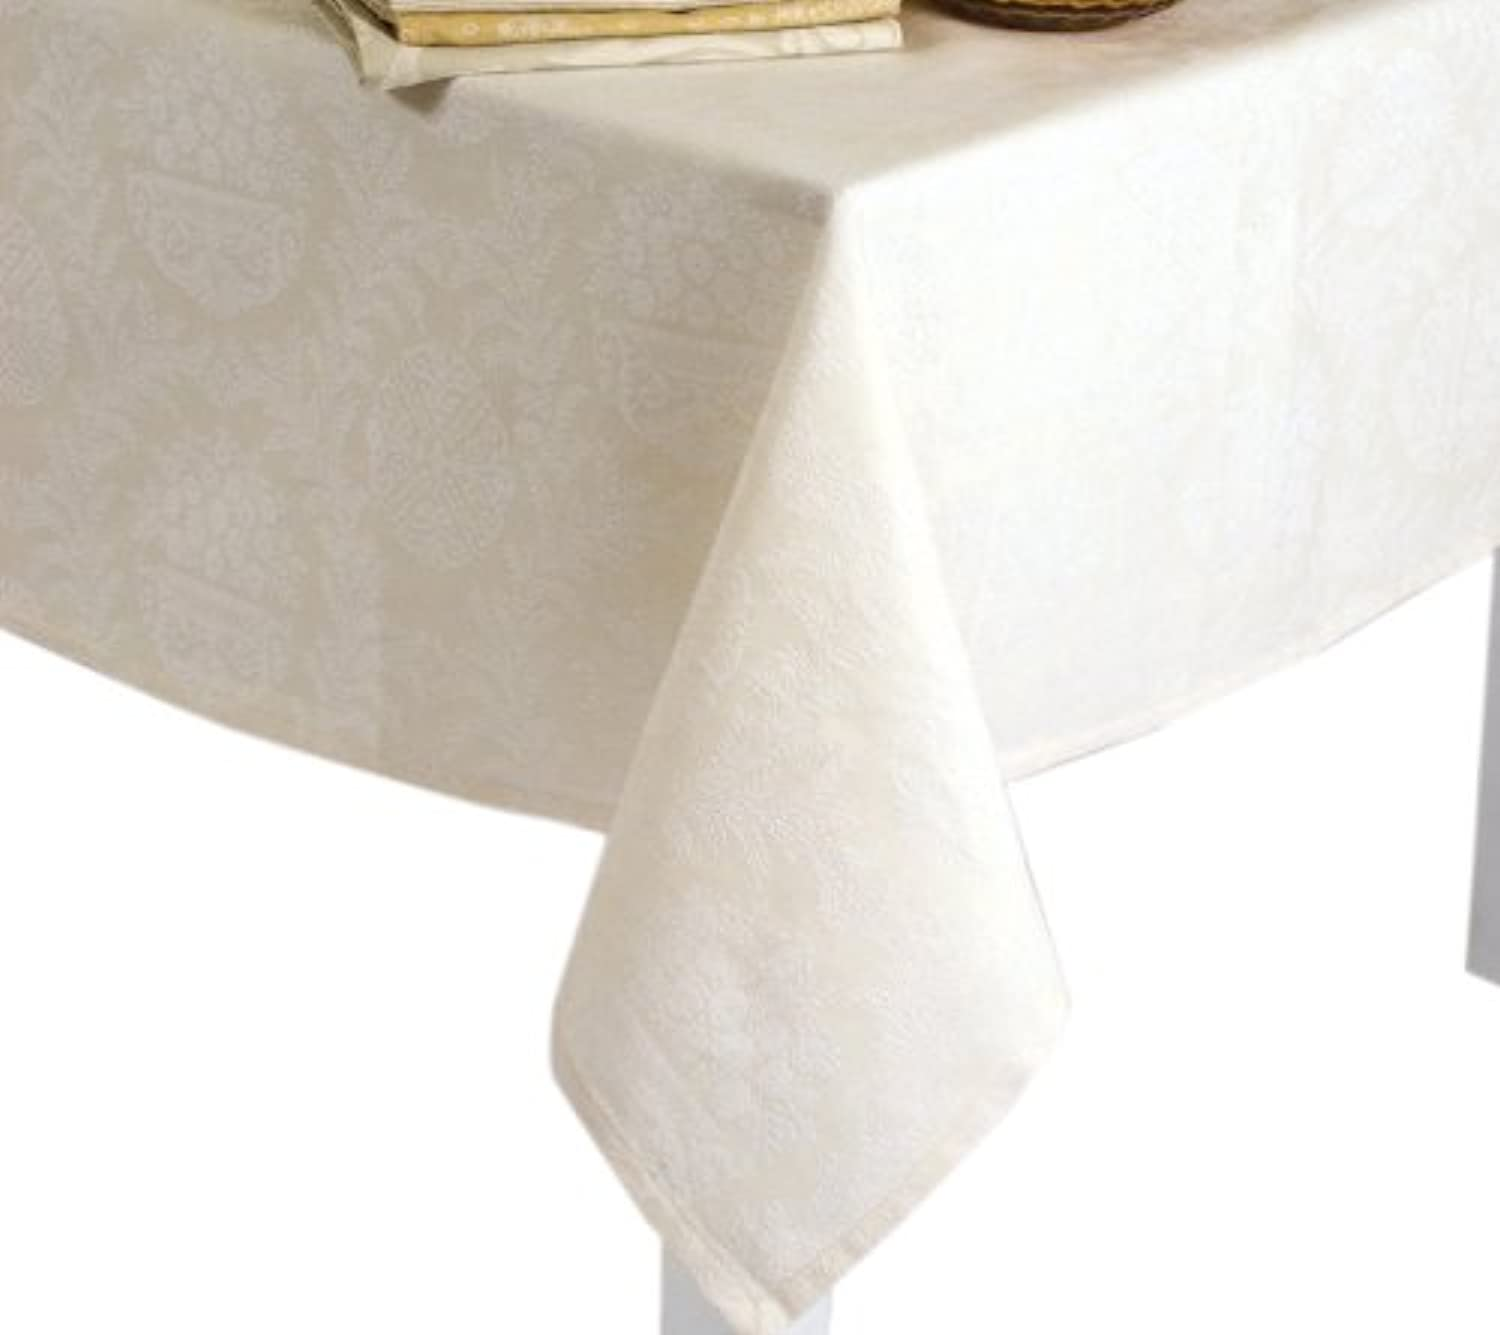 Mahogany  Victoria Ivory Jacquard-Weave Tablecloth, 60-inch by 120-inch Rectangle, 100% Cotton